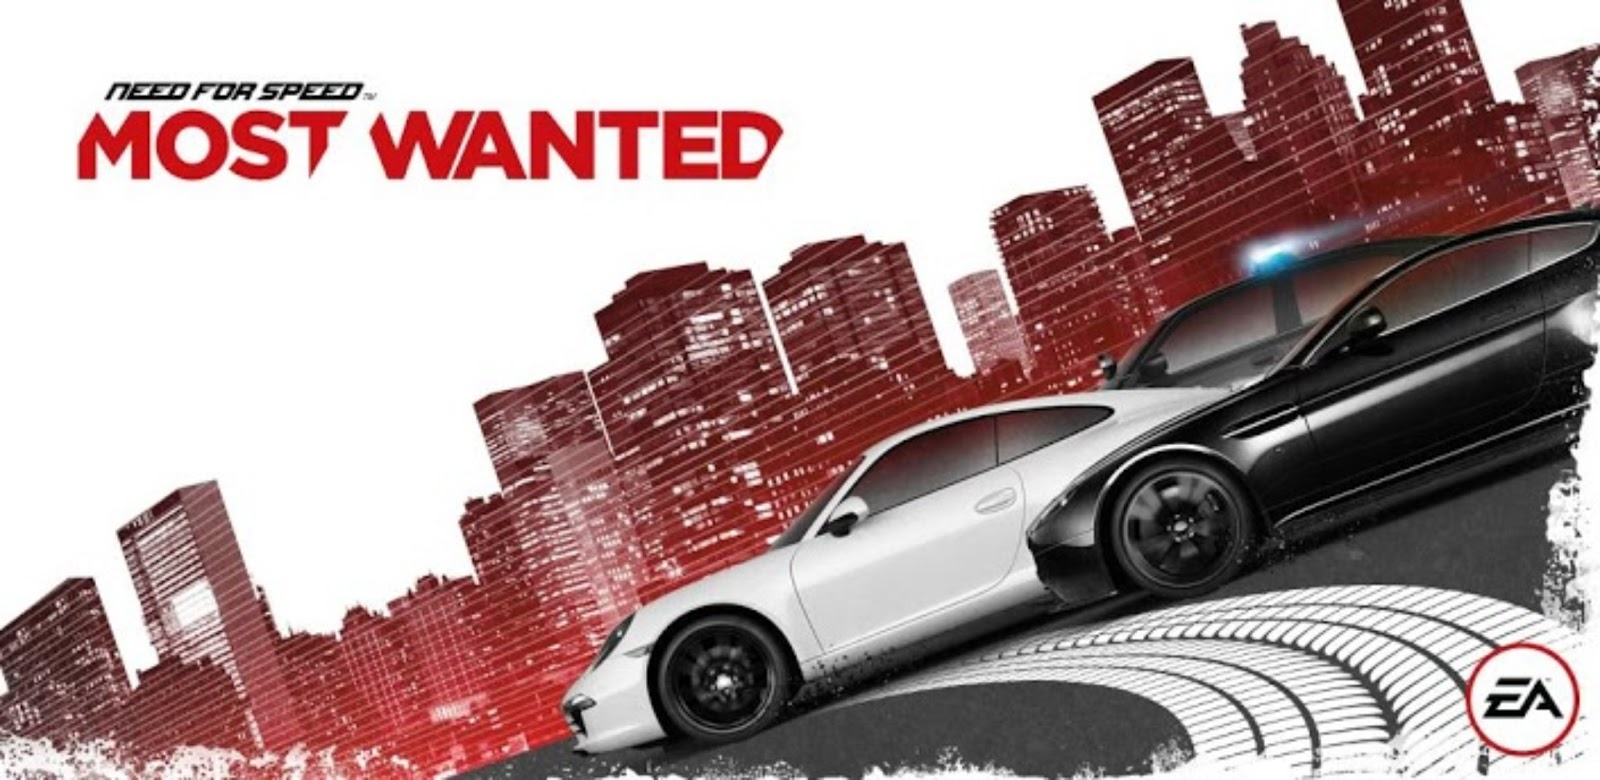 Need for speed most wanted 1 apk sd data offline for Nfs most wanted android